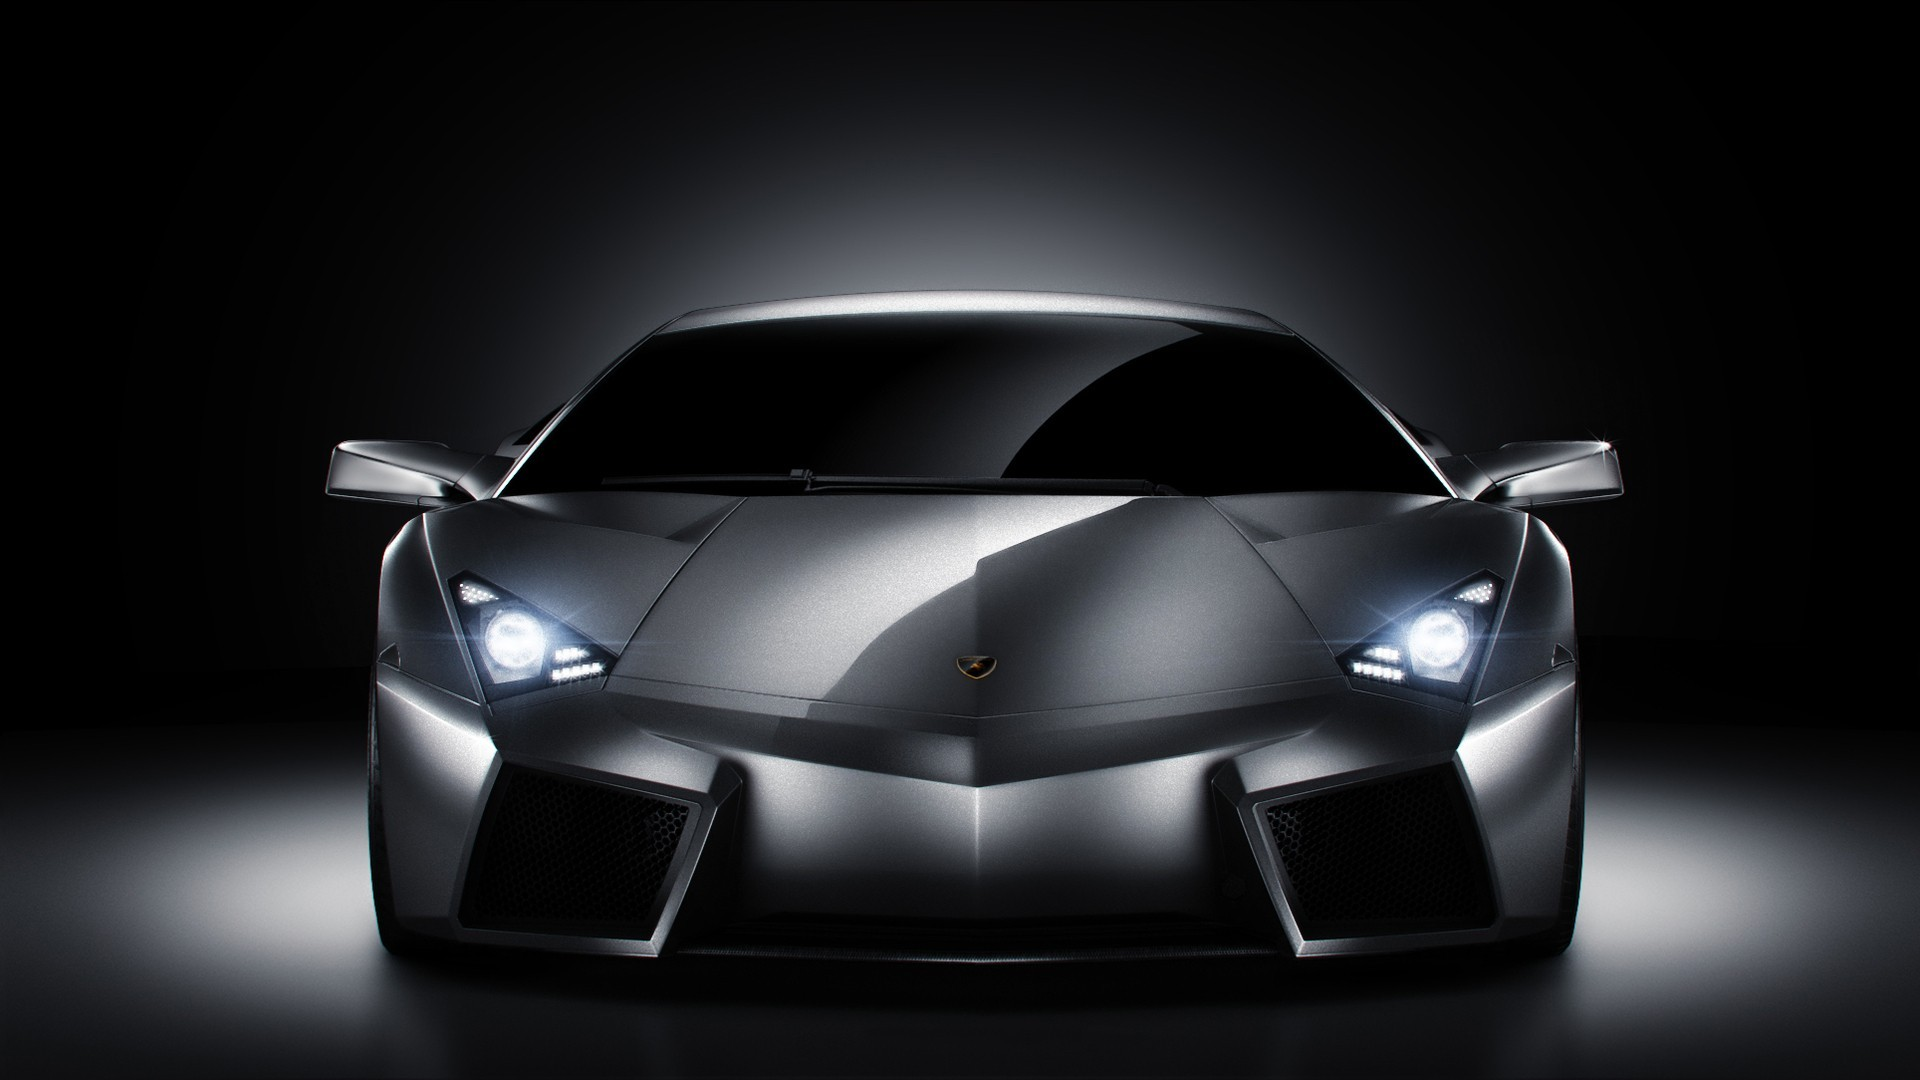 Reventon Hd Wallpaper 4975 Hd Wallpapers in Cars   Imagescicom 1920x1080